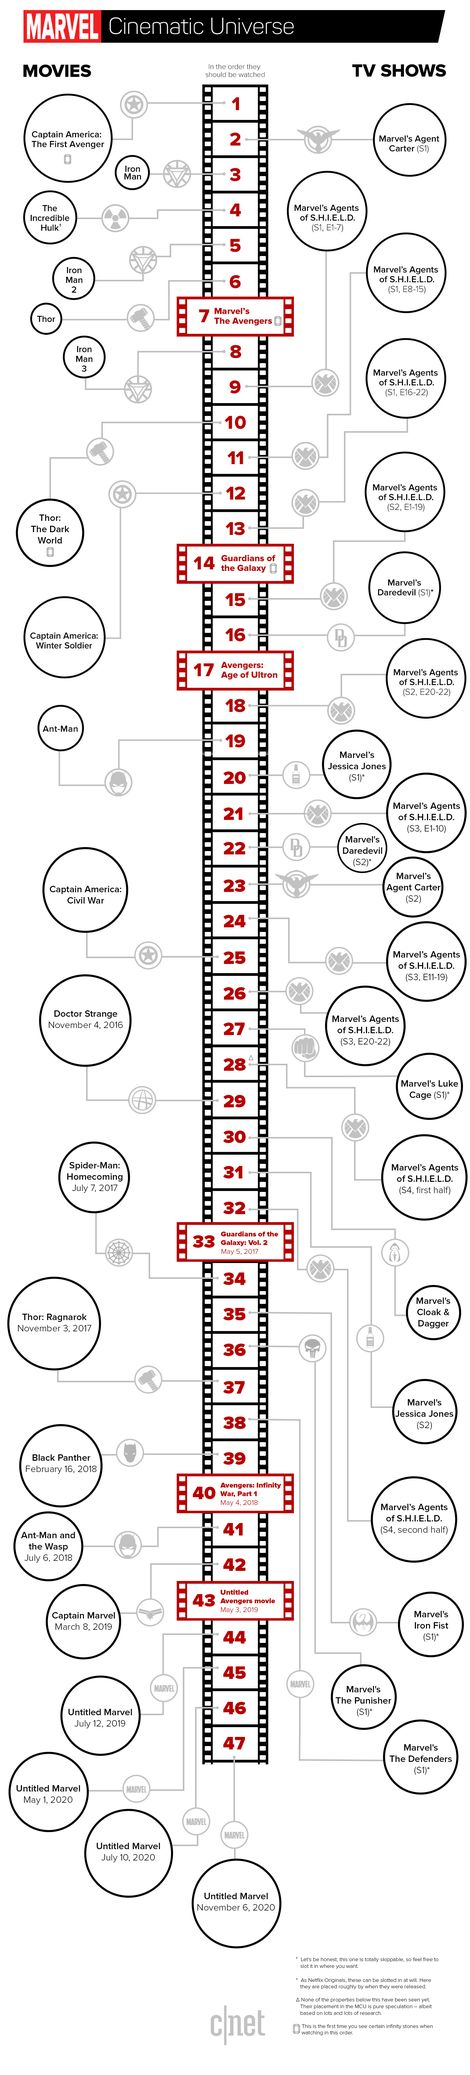 Infographic: We've laid out every Marvel movie and TV show -- and the absolute ideal order for watching them -- so you can check out the latest Marvel properties superprepared.